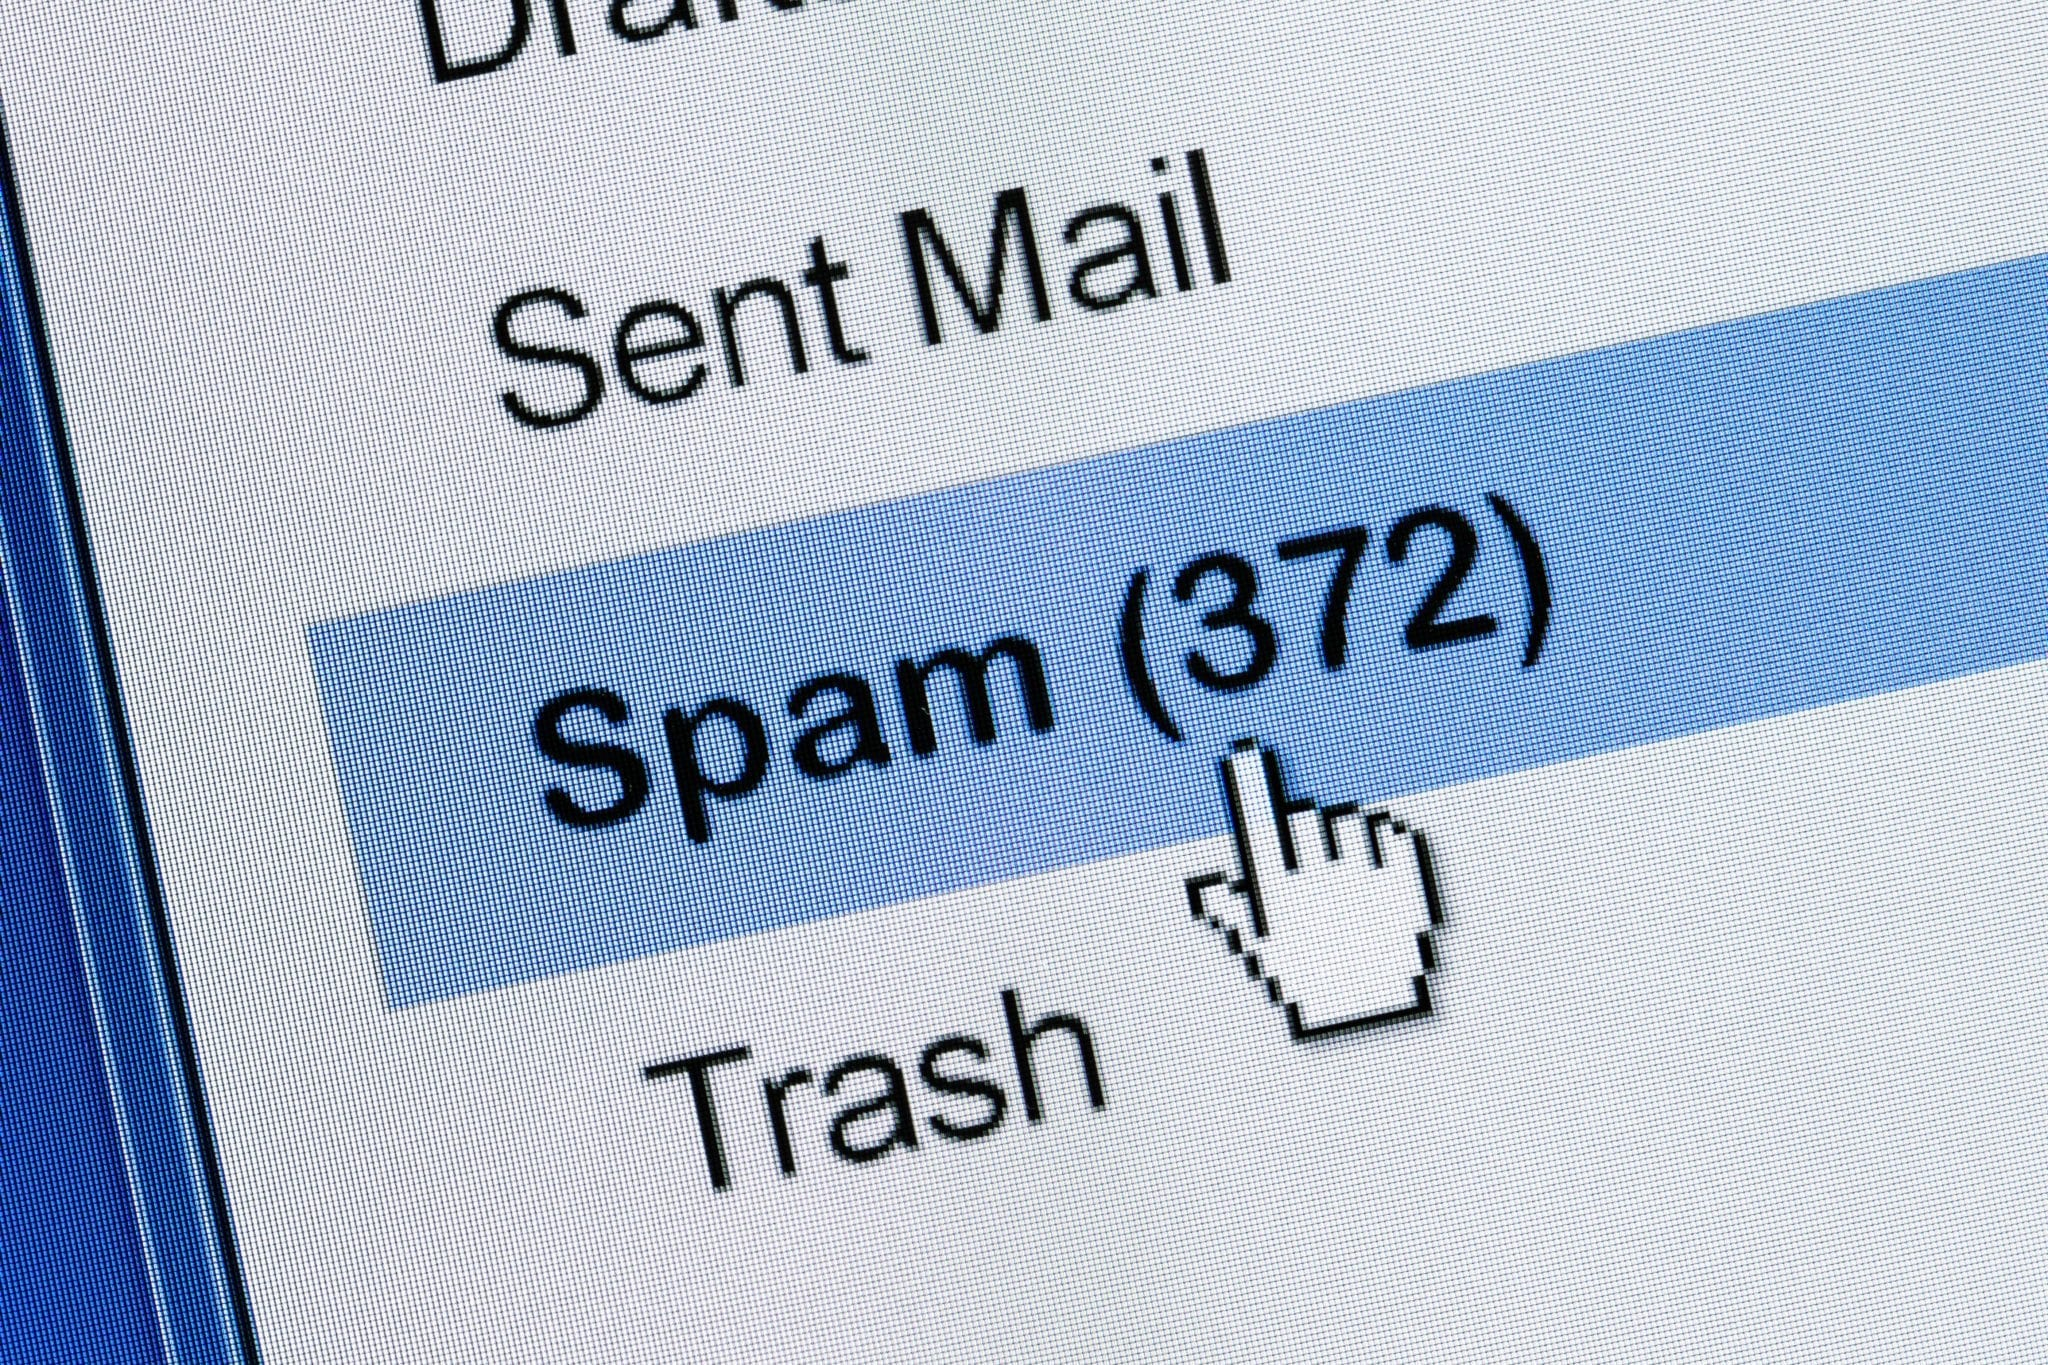 our-favourite-spam-bot-prevention-modules-for-drupal-7.jpg